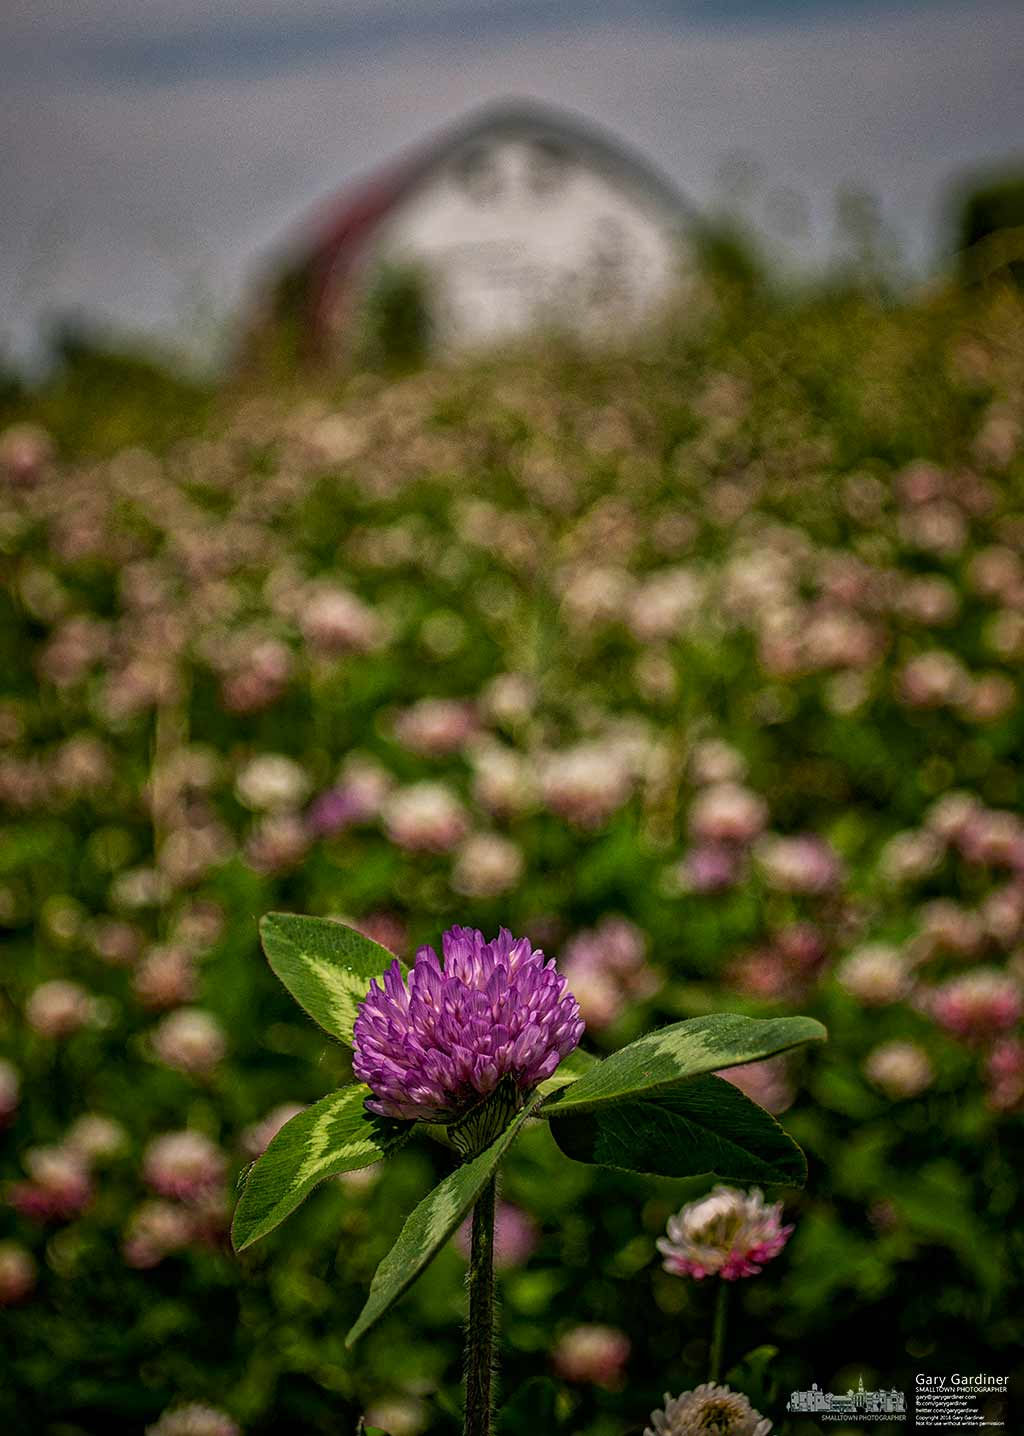 A single fresh clover blossom brightens a hay field at the Braun Farm. My Final Photo for May 31. 2016.